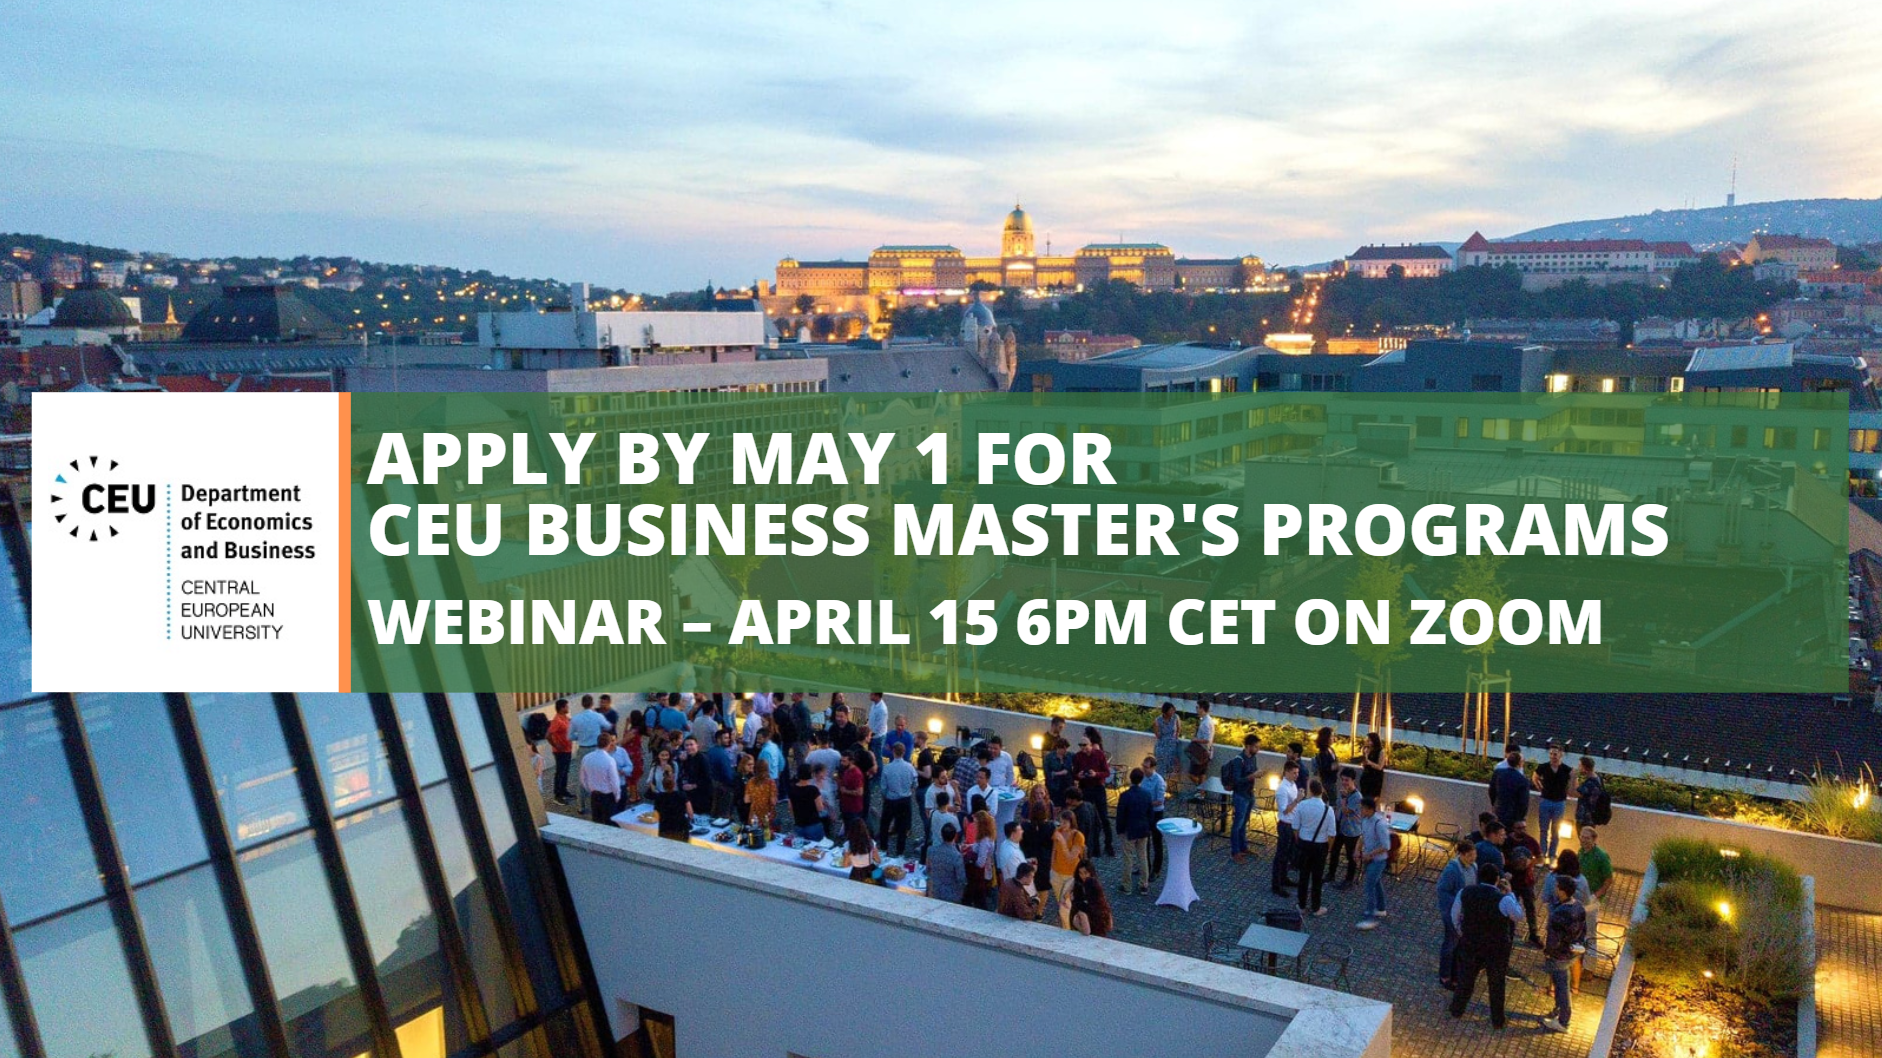 EU Business Masters Apply May 1 Webinar April 15 MS in Business Analytics MS in Finance Scholarships Internships Future of Big Data London Boutique Investment Firm Women in Technology BlackRock Morgan Stanley